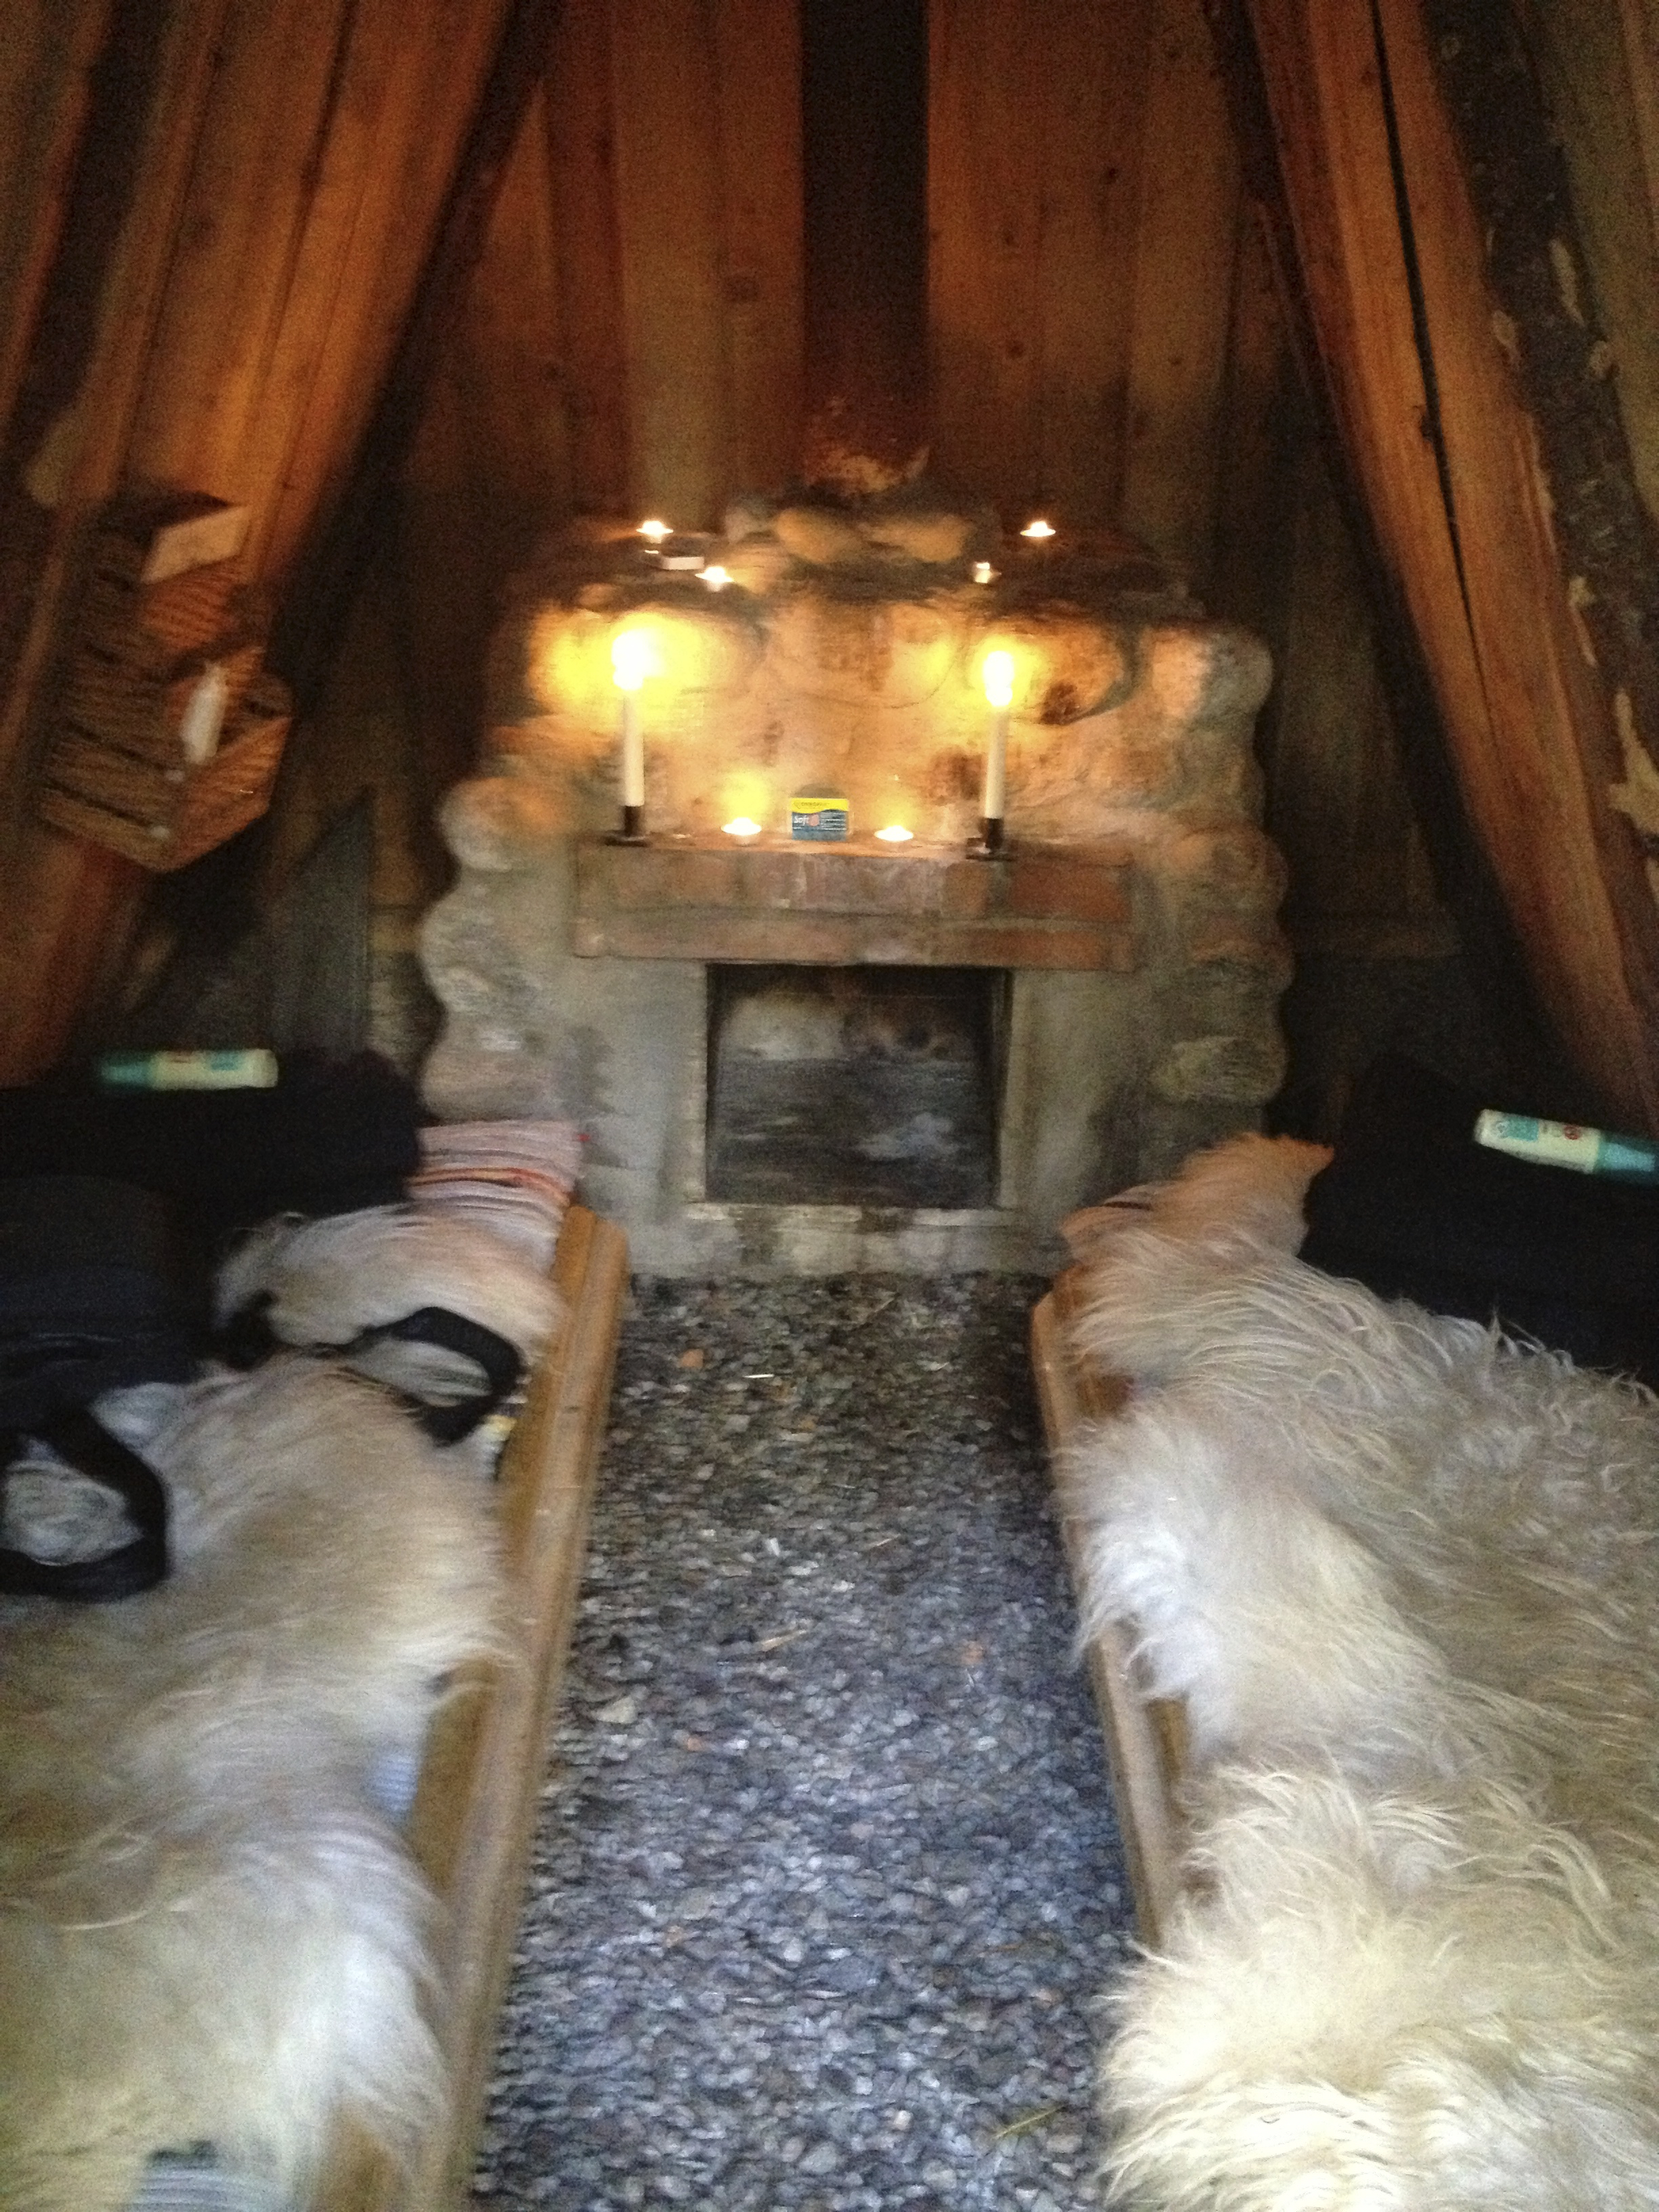 The inside of my hut complete with wood burning stove and wooden planks with sheepskin to sleep on. We also added some padding and a sleeping bag for good measure.